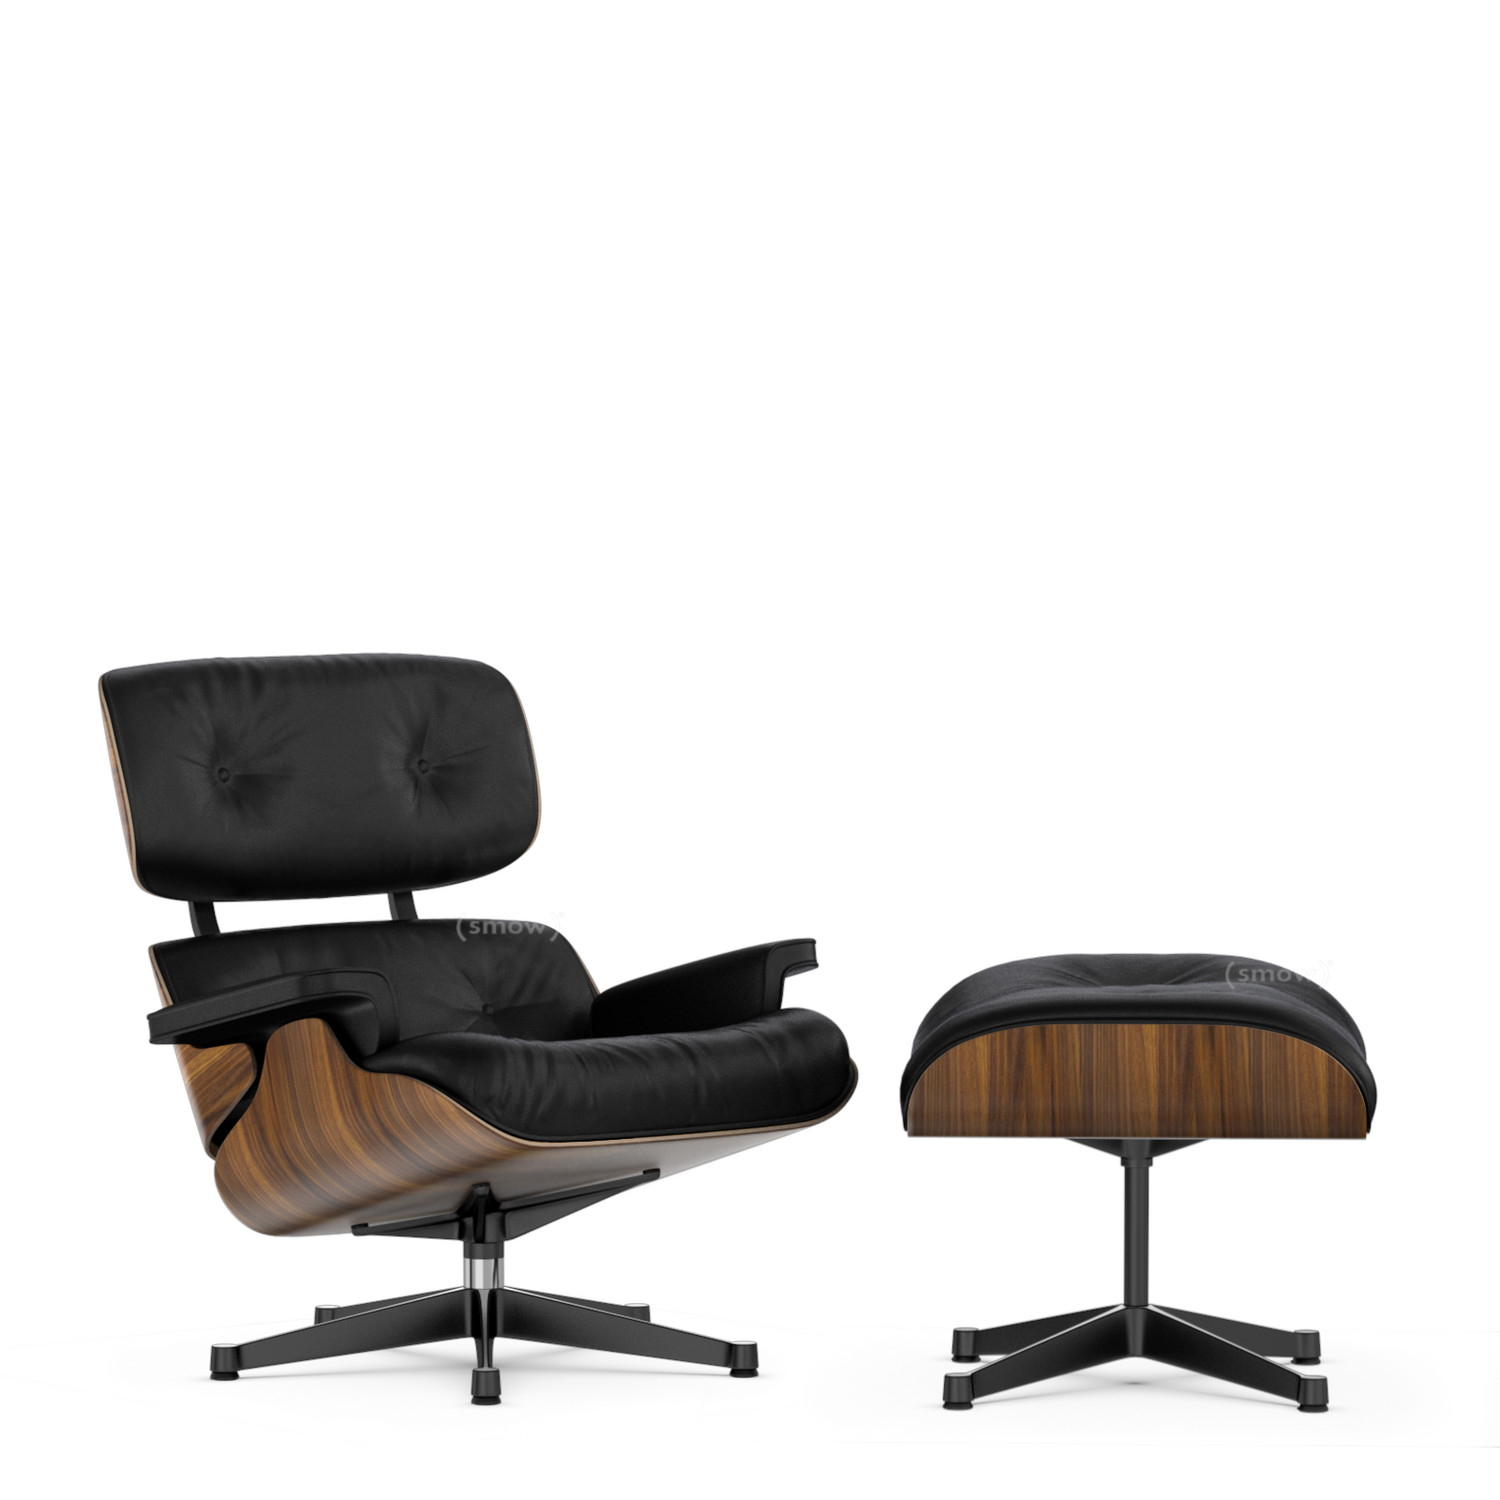 Vitra lounge chair ottoman by charles ray eames 1956 for Eames lounge sessel nachbau